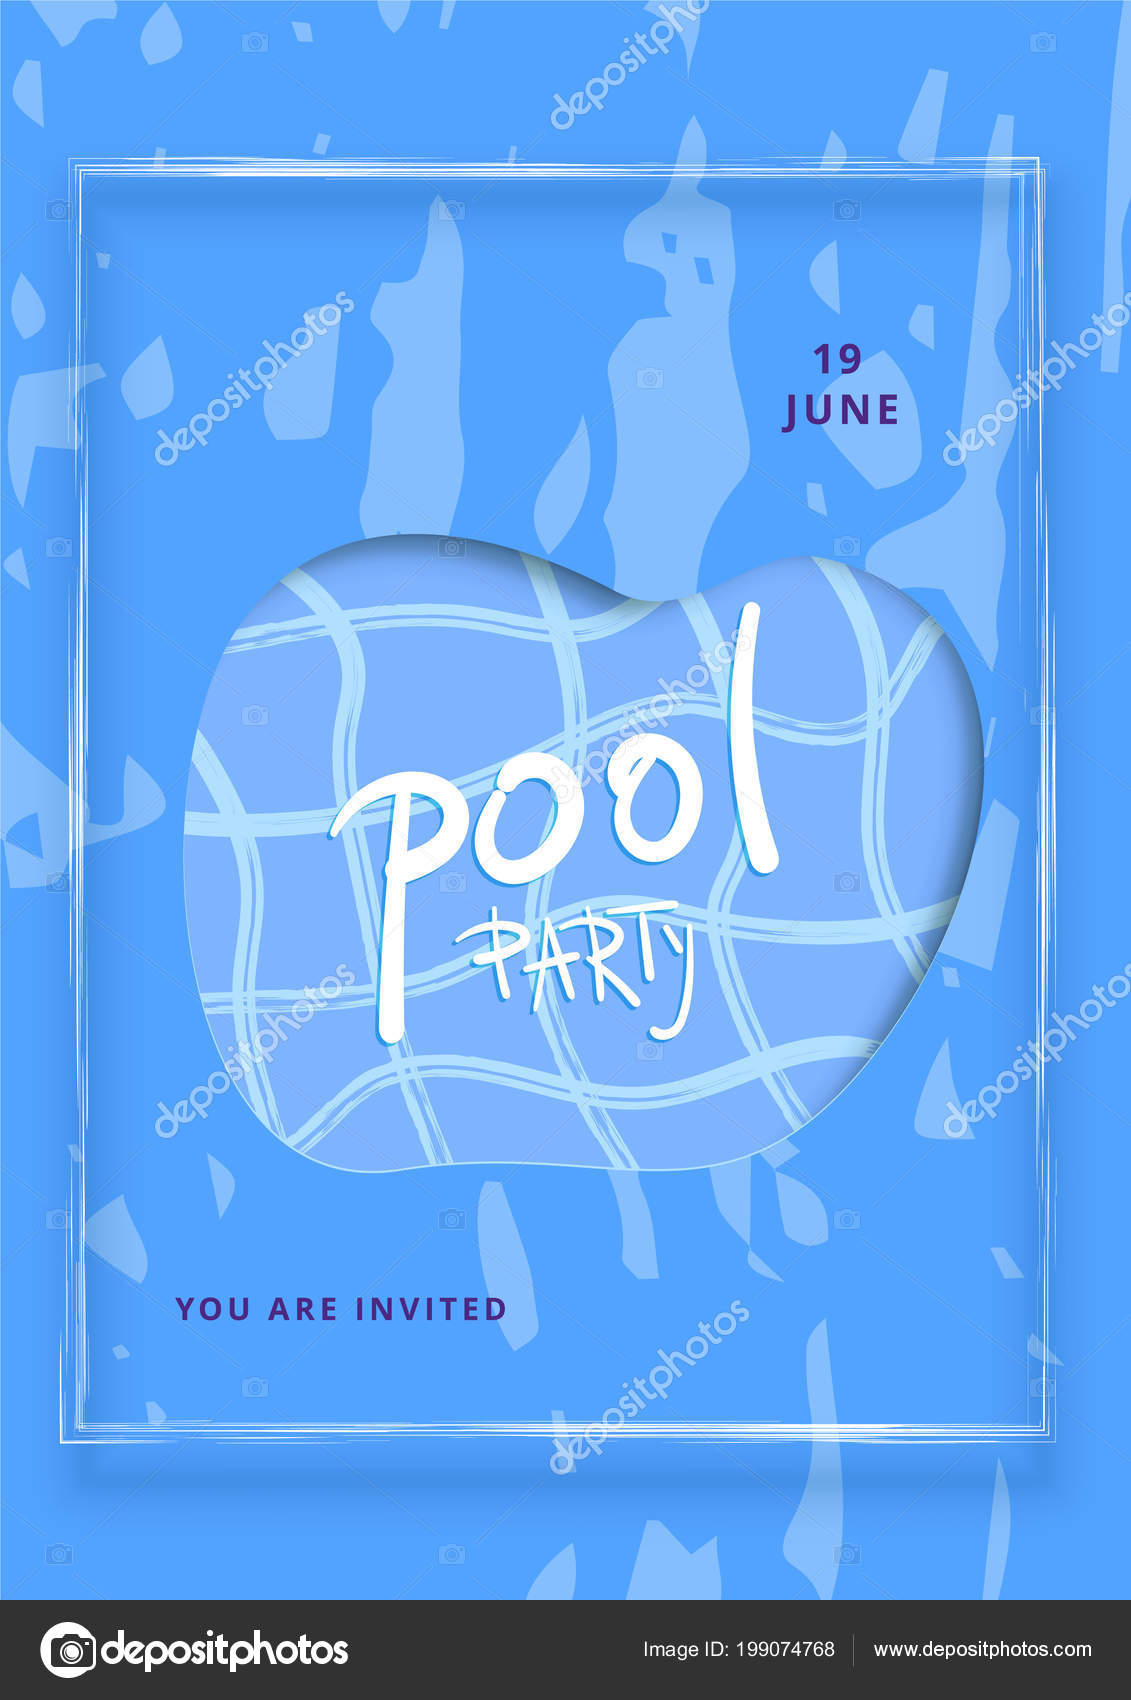 Vertical pool party banner template holiday summer flyer design blue vertical pool party banner template holiday summer flyer design blue stock vector maxwellsz